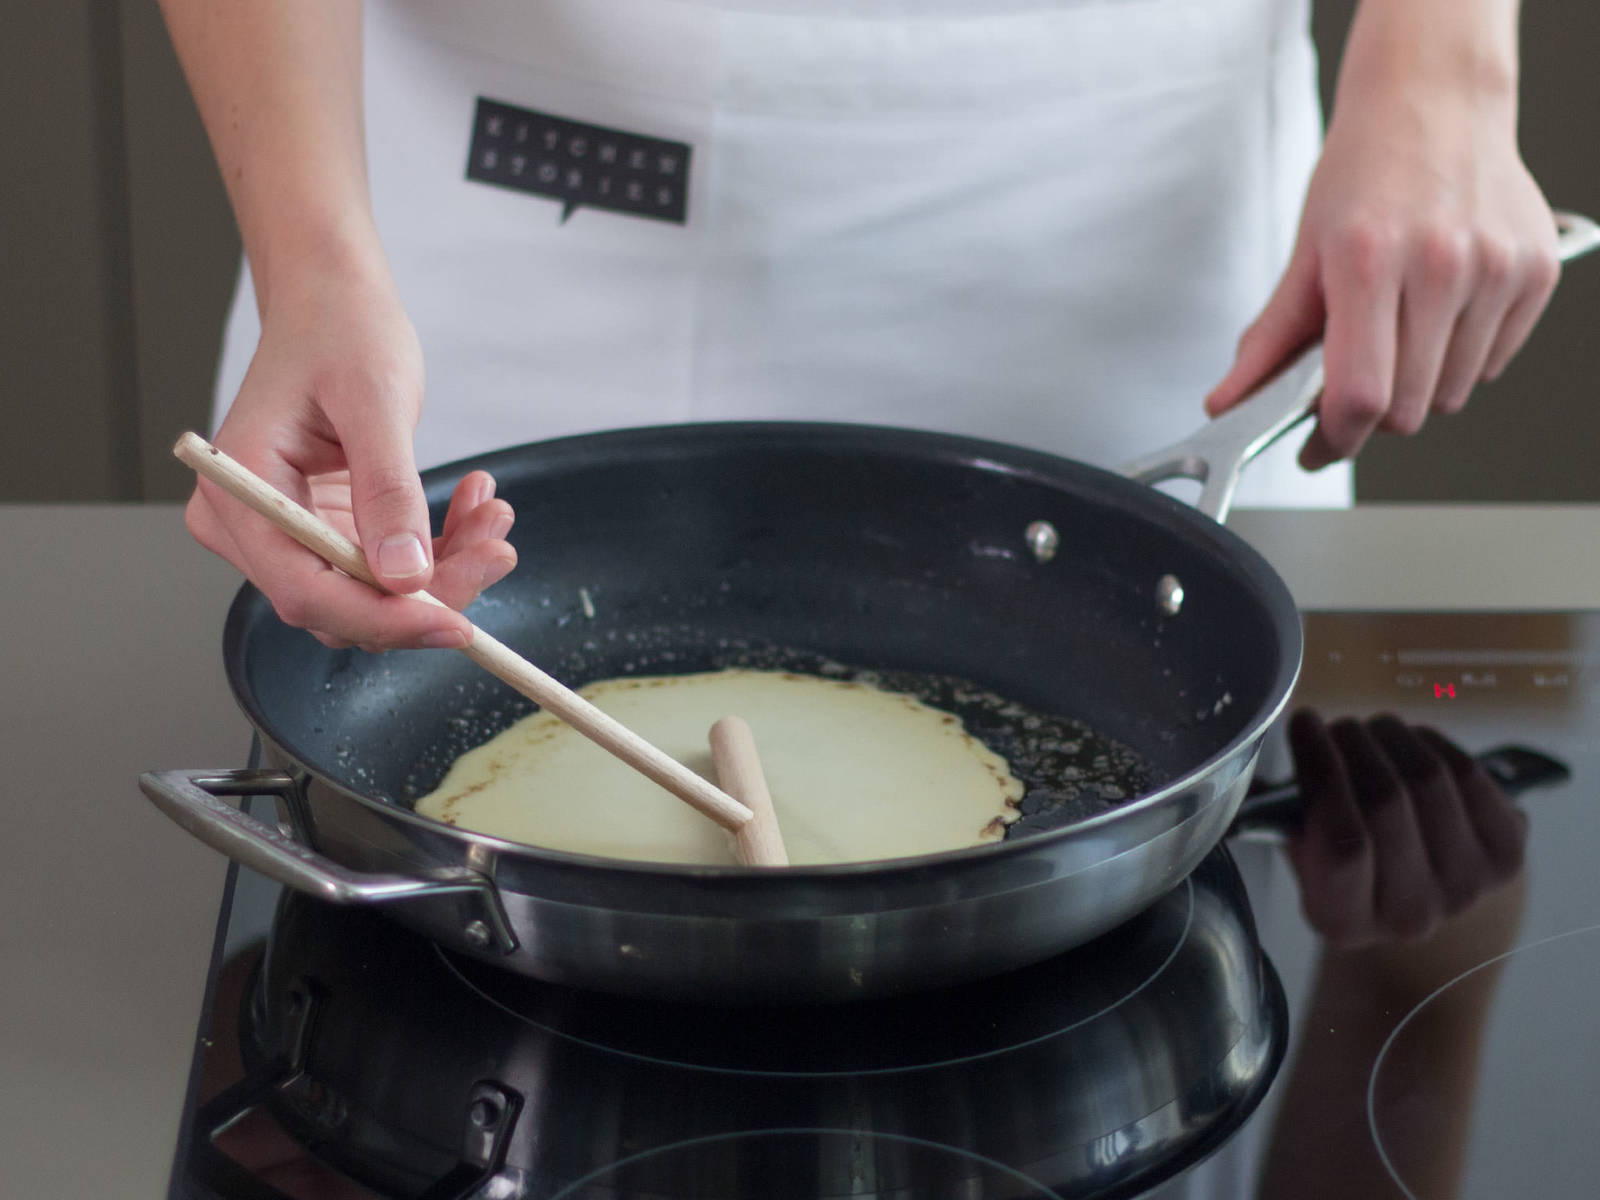 Melt some butter in a large frying pan over medium-high heat and cook crepes for approx. 1 min. per side until golden brown. Transfer to a plate and let cool completely.